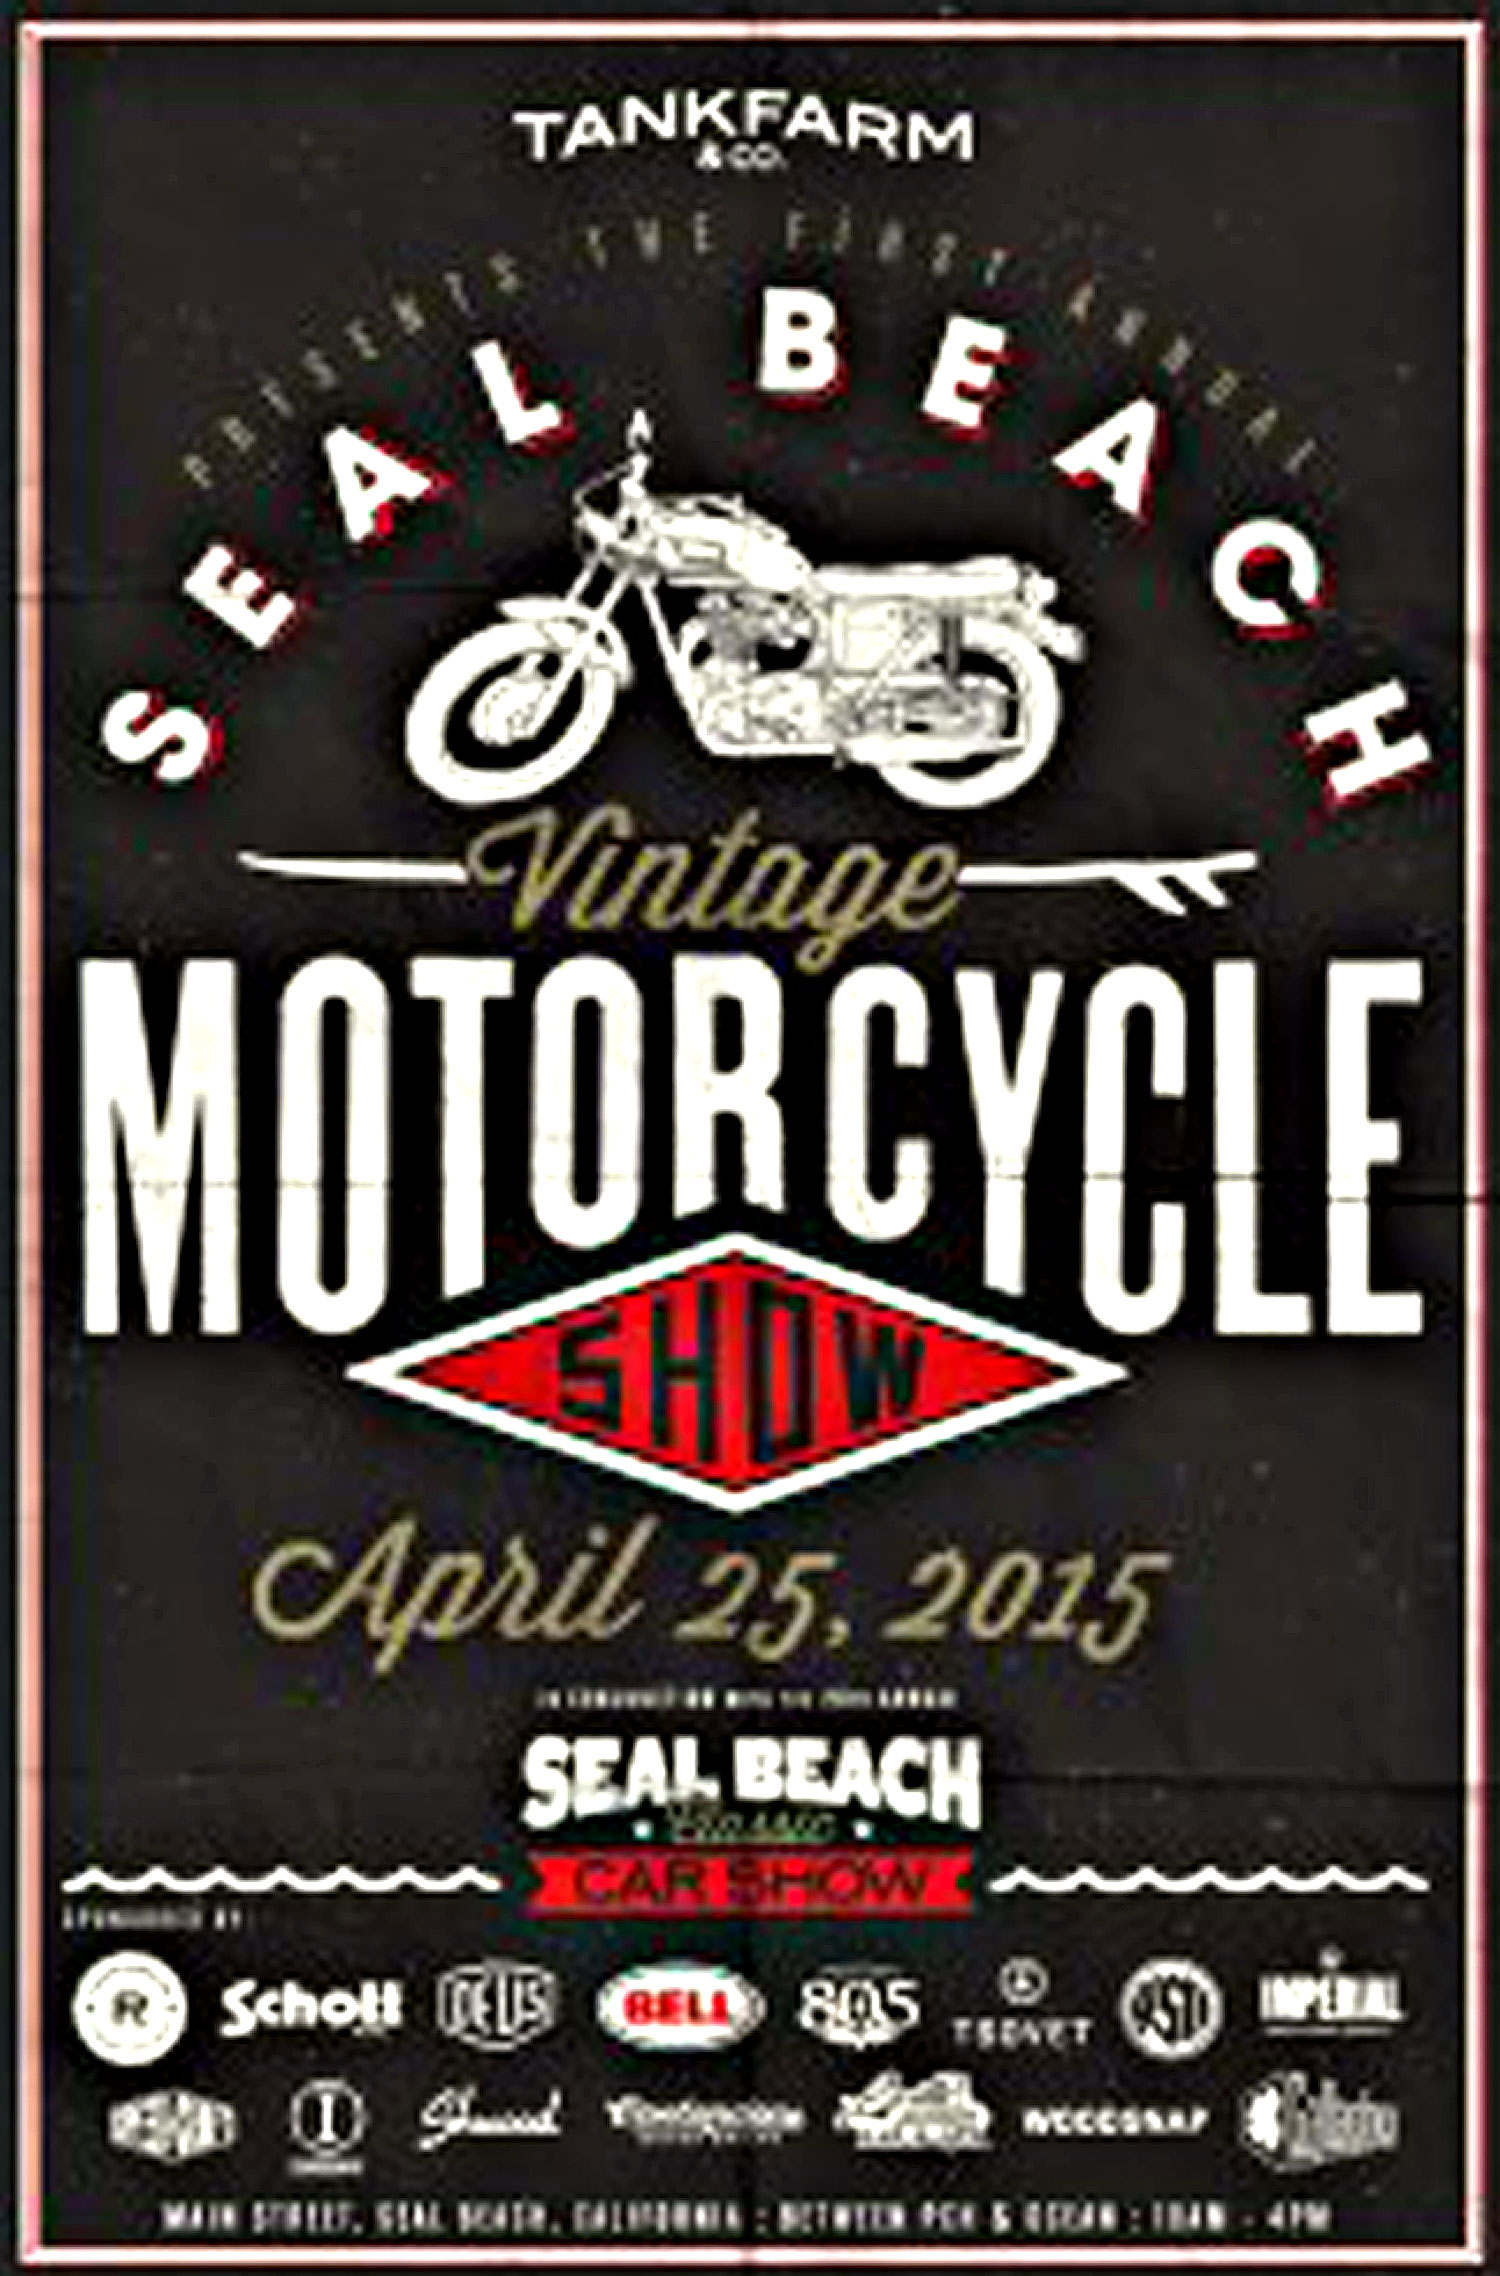 Seal Beach Motorcycle Show April 25, 2015